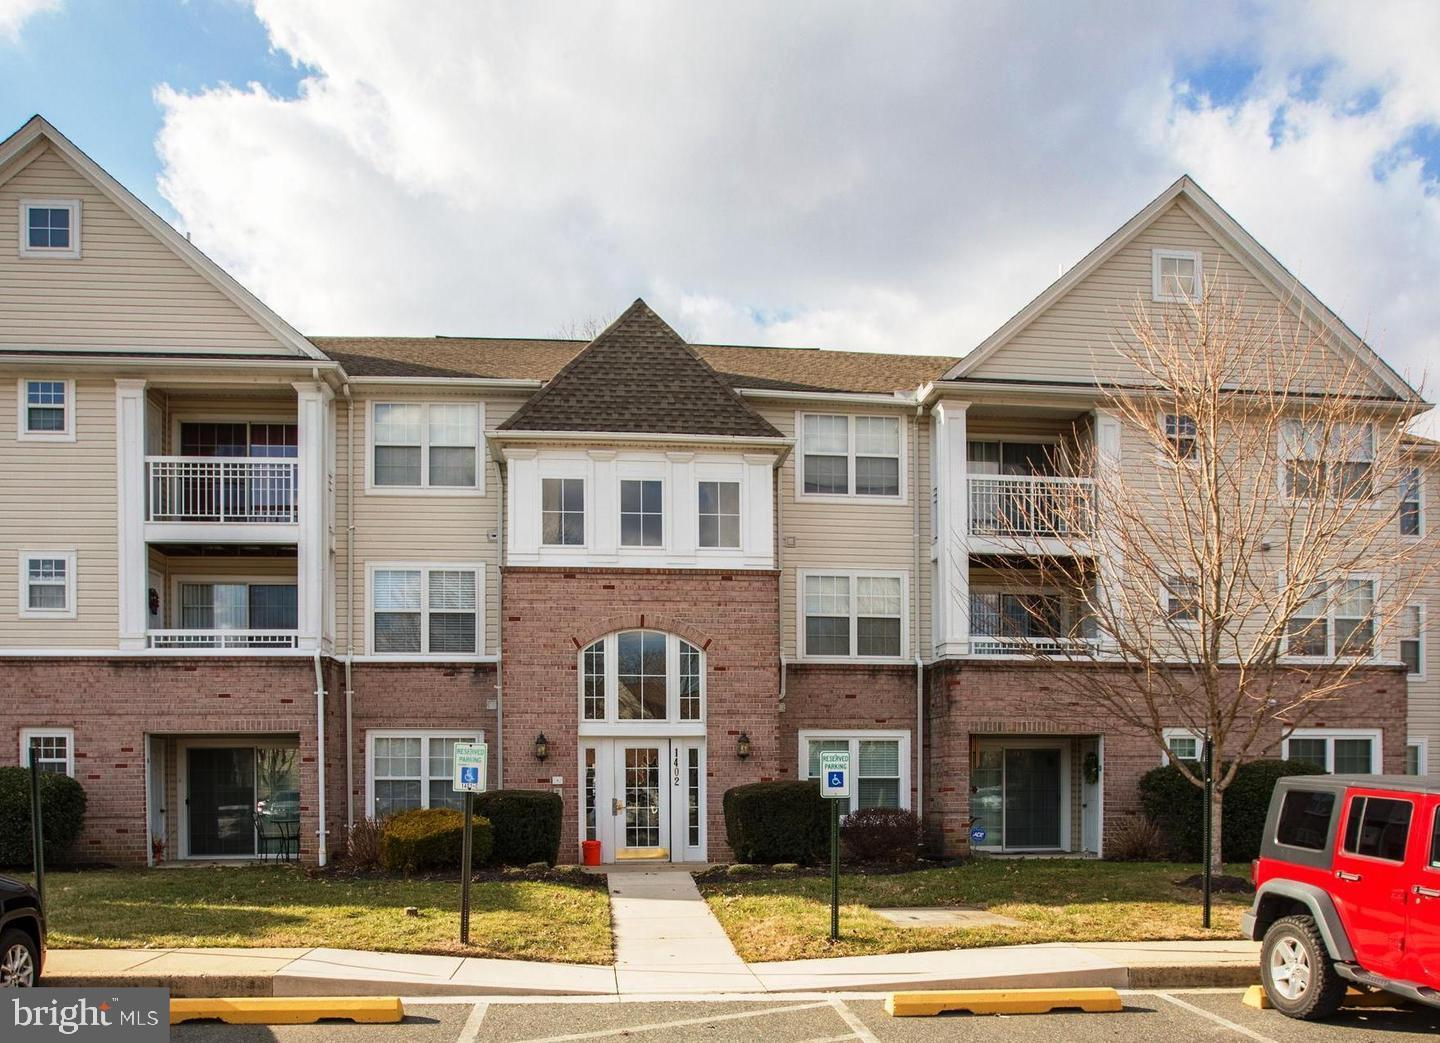 WONDERFUL THREE BEDROOM, TWO BATH CONDO IN SOUGHT AFTER TAYLOR RIDGE. MOVE IN READY GROUND LEVEL CON